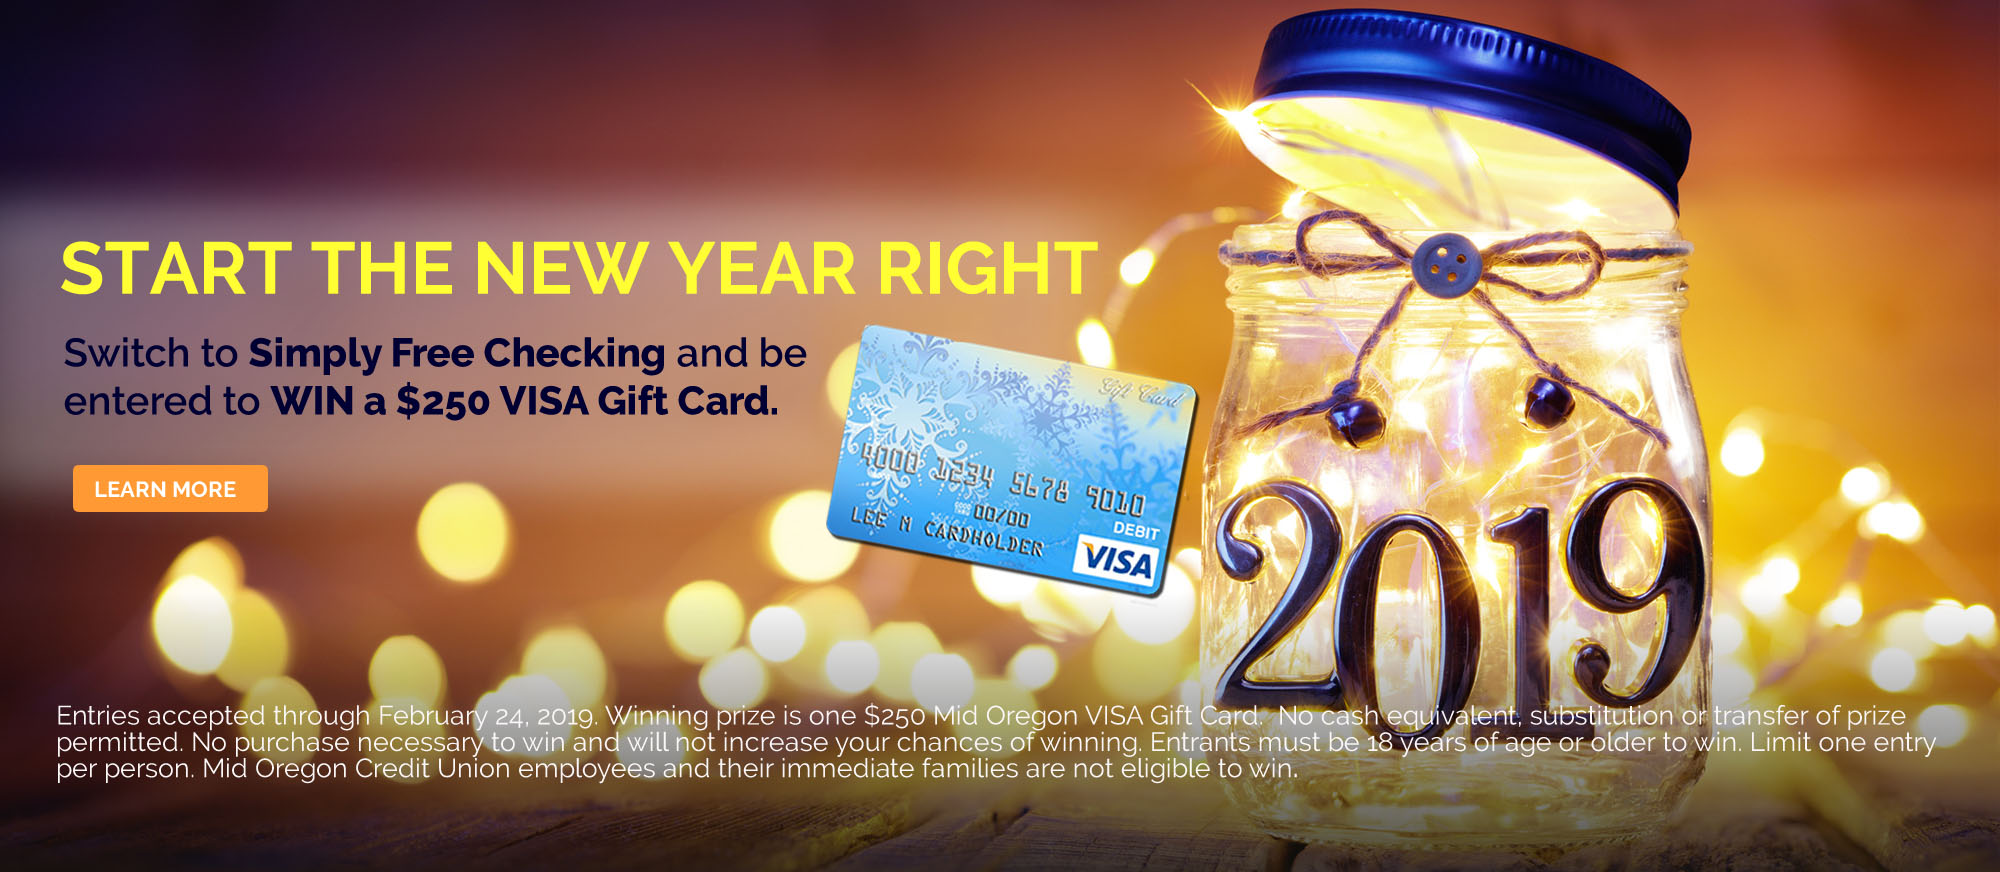 Simply Free Checking Promotion VISA Gift Card